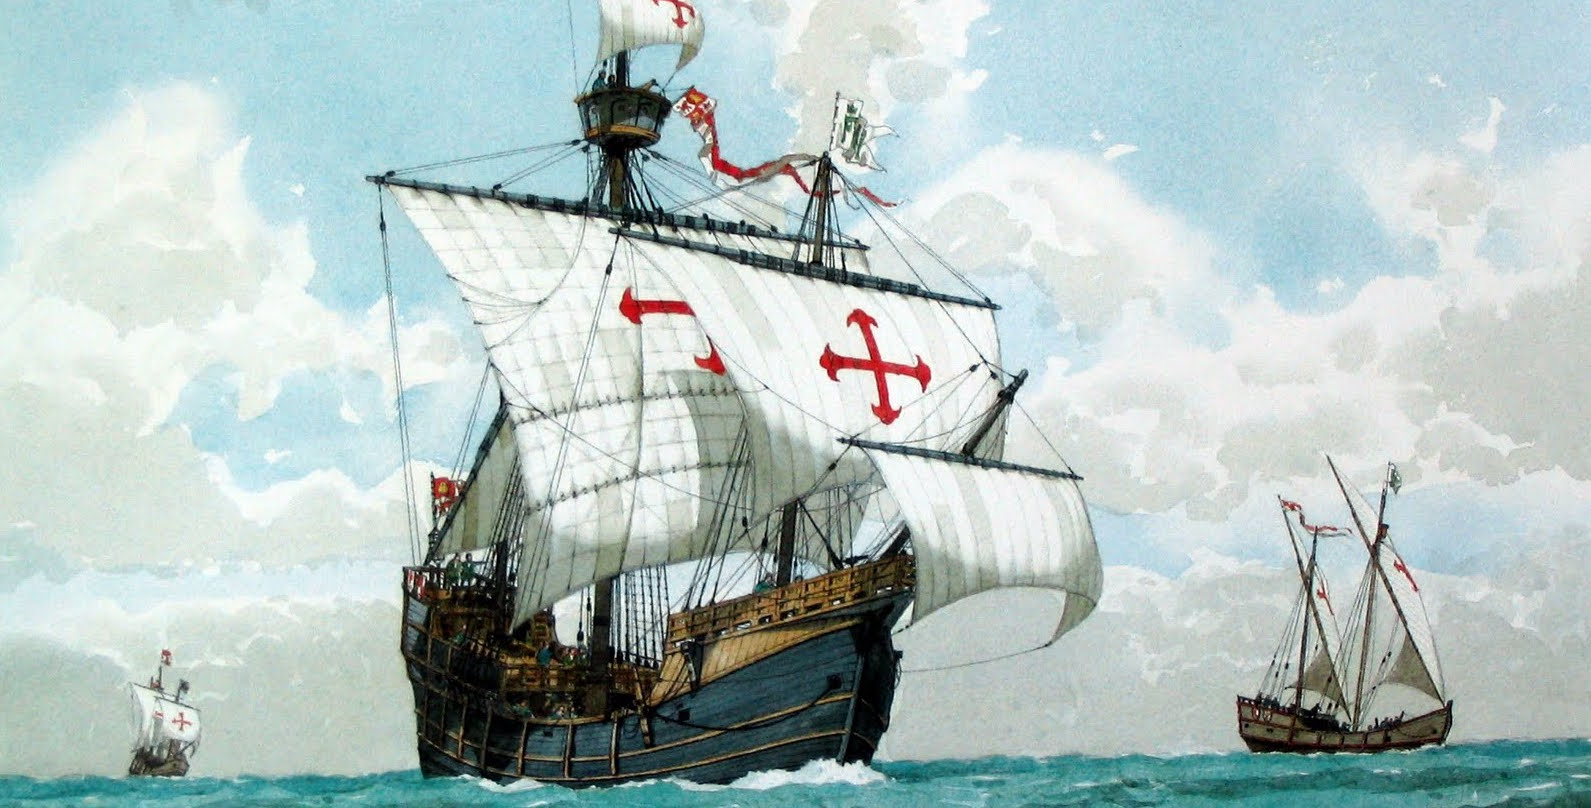 Spanish caravels in the time of Columbus